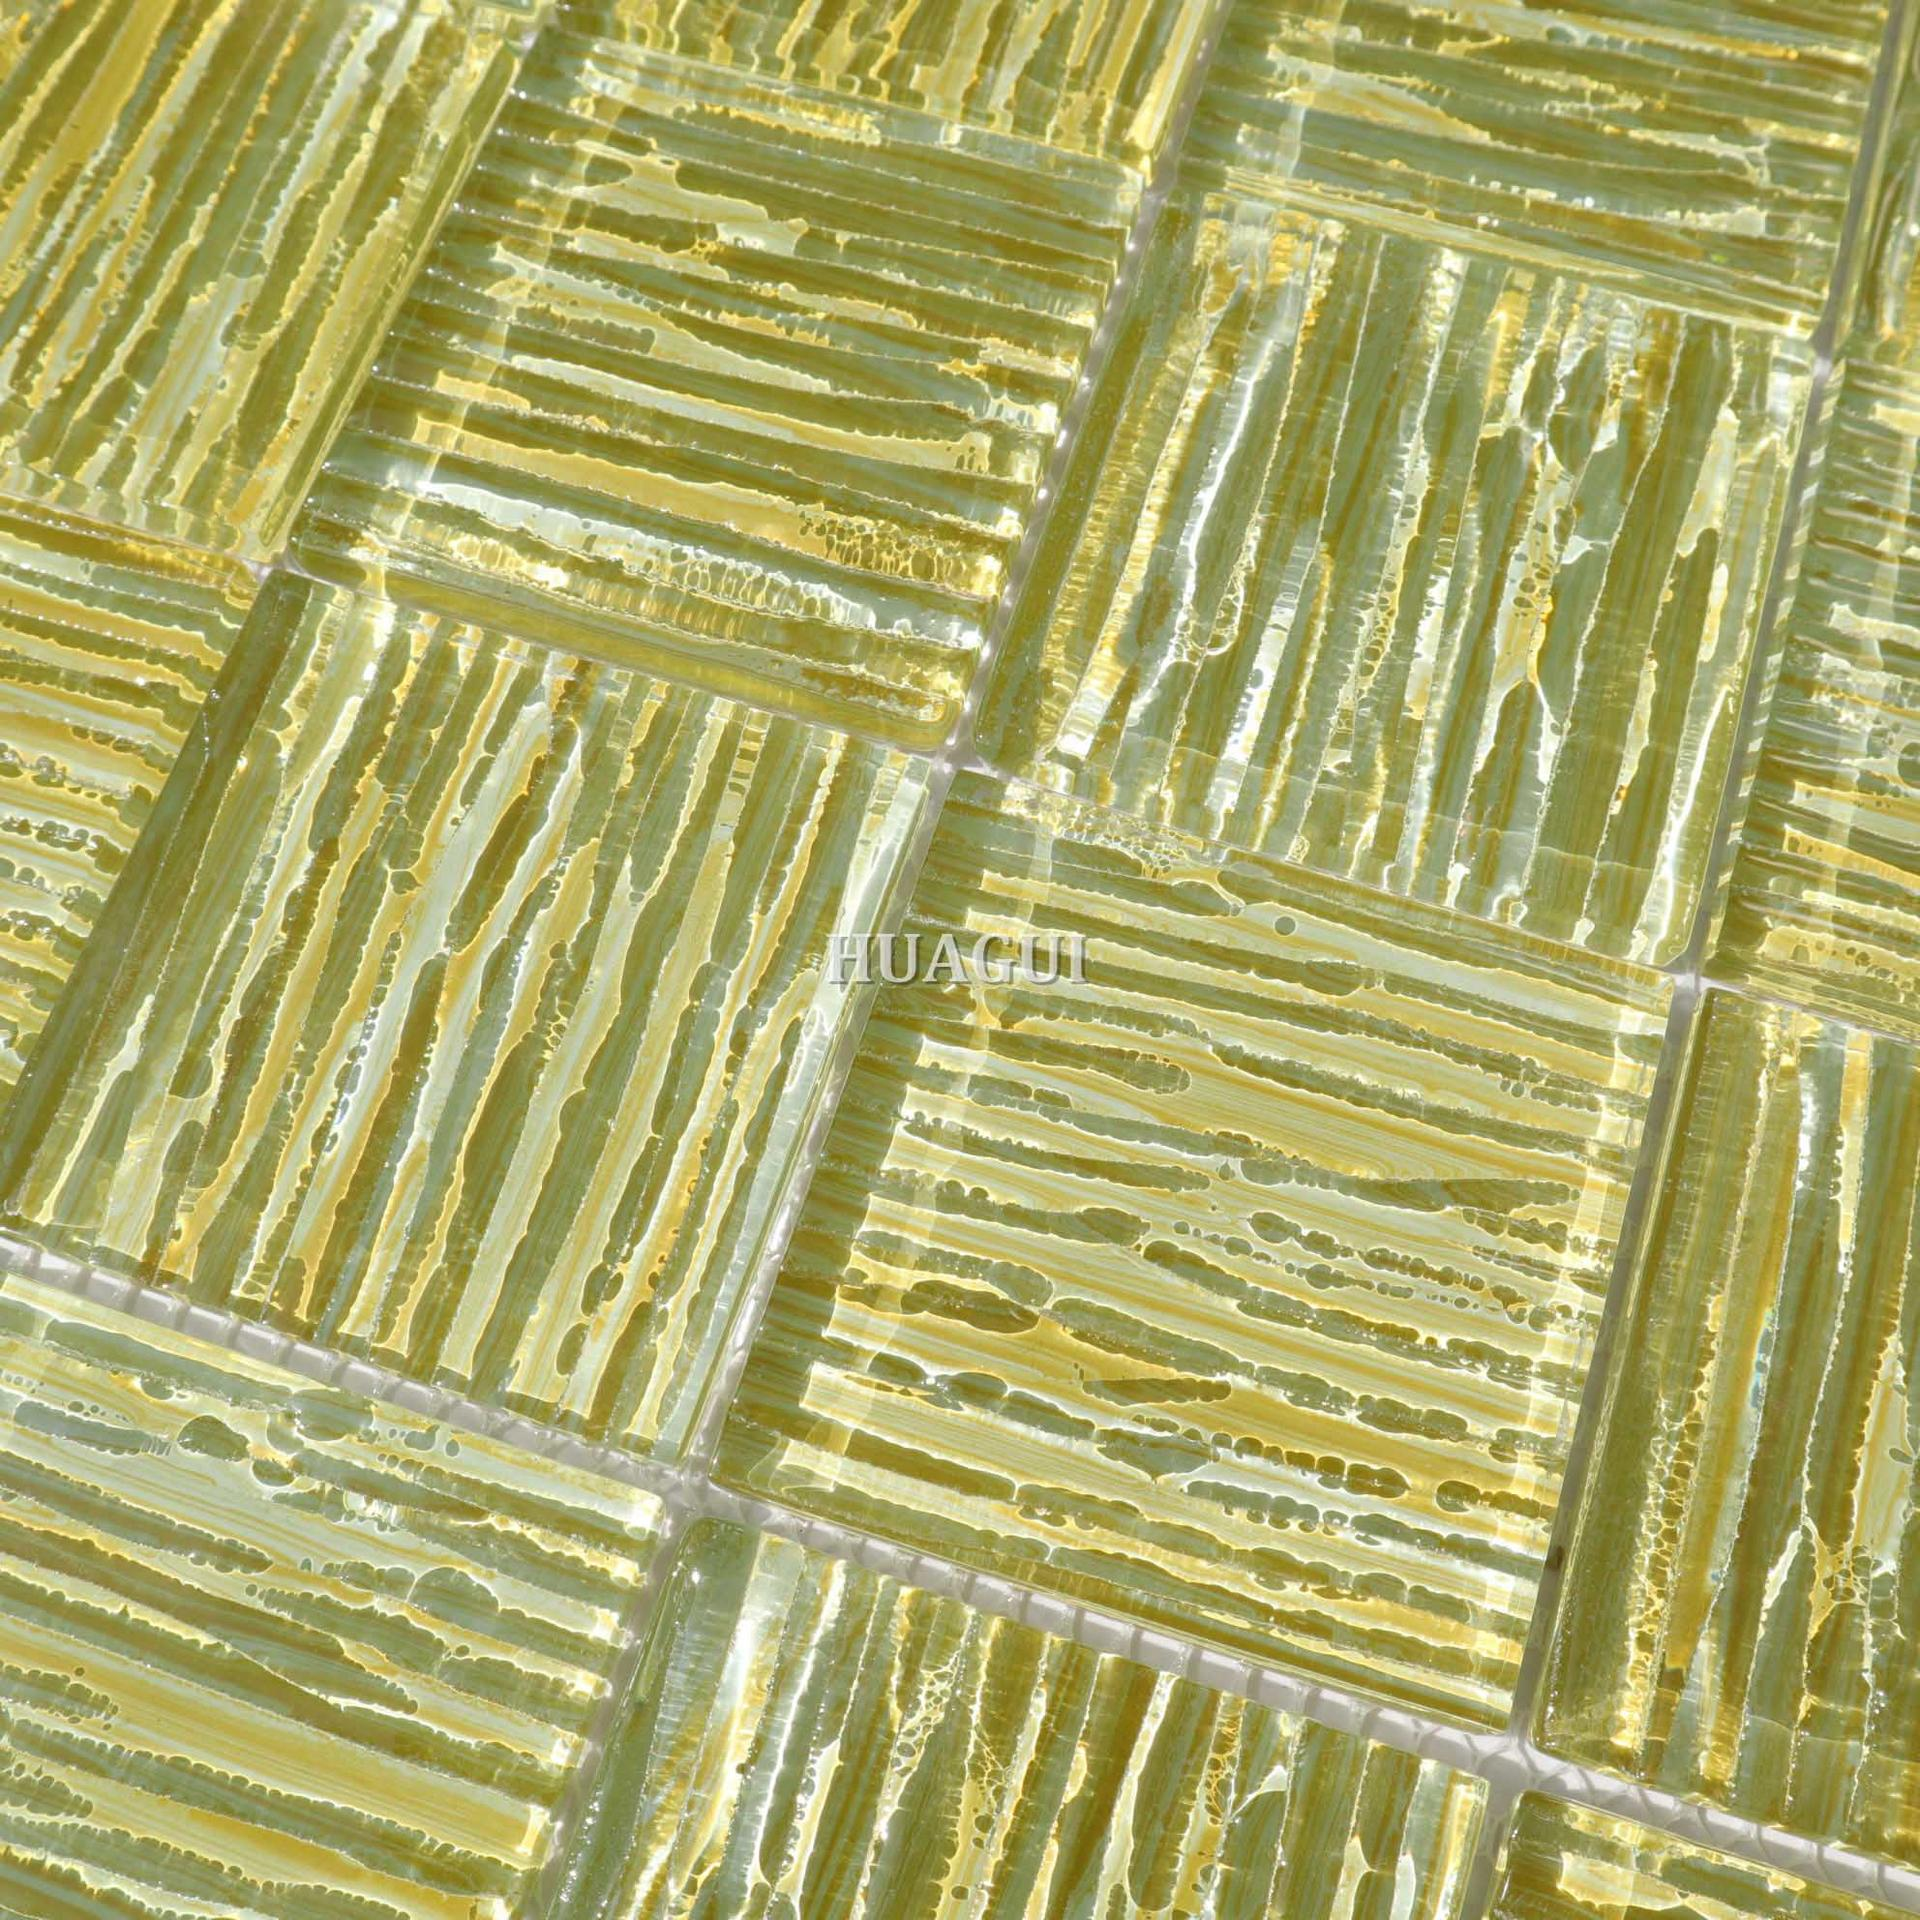 Painted grain with glossy crystal glass tiles patterned